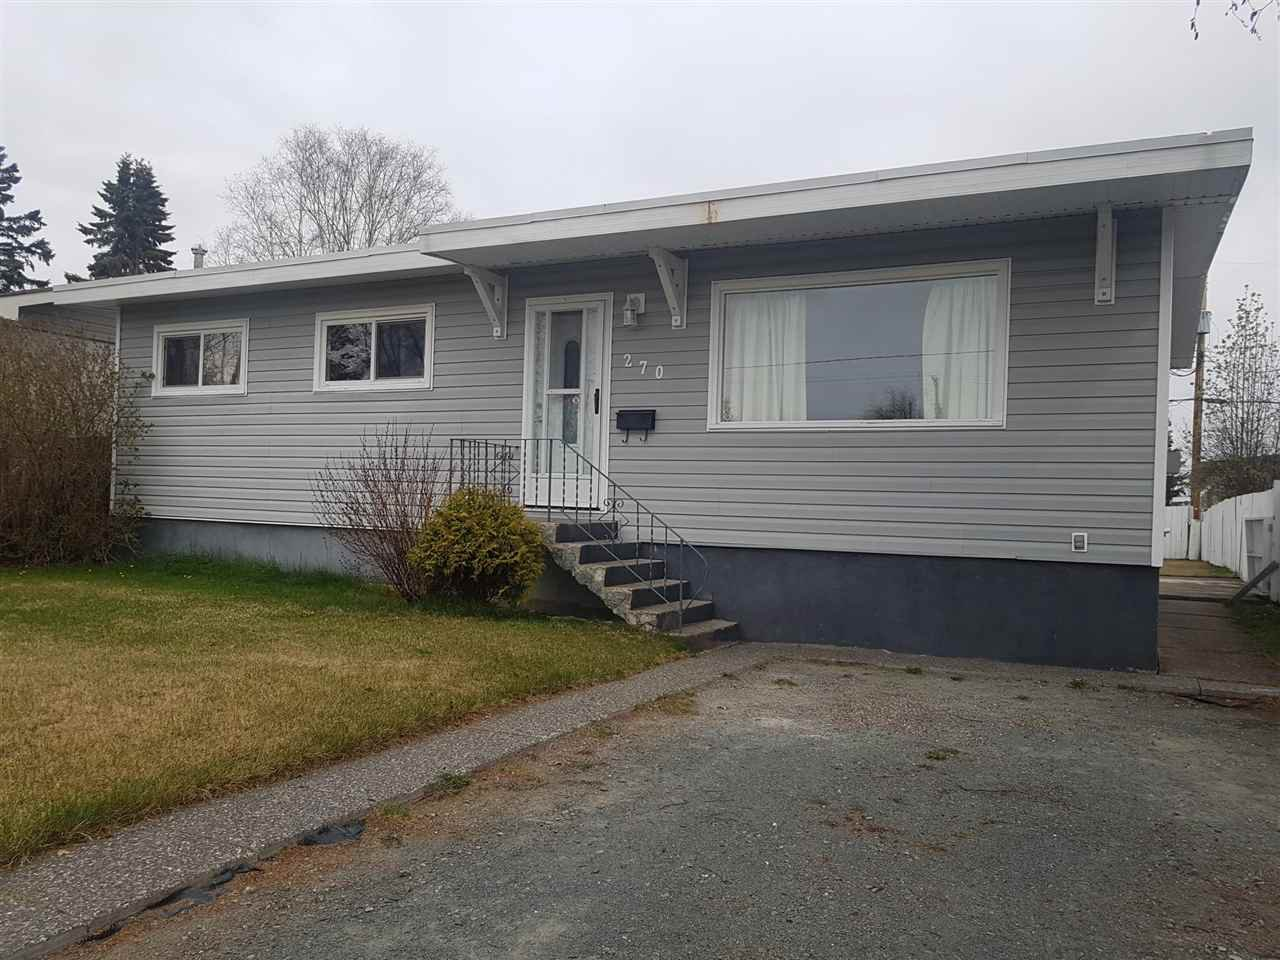 Main Photo: 270 S NICHOLSON Street in Prince George: Quinson House for sale (PG City West (Zone 71))  : MLS®# R2367893